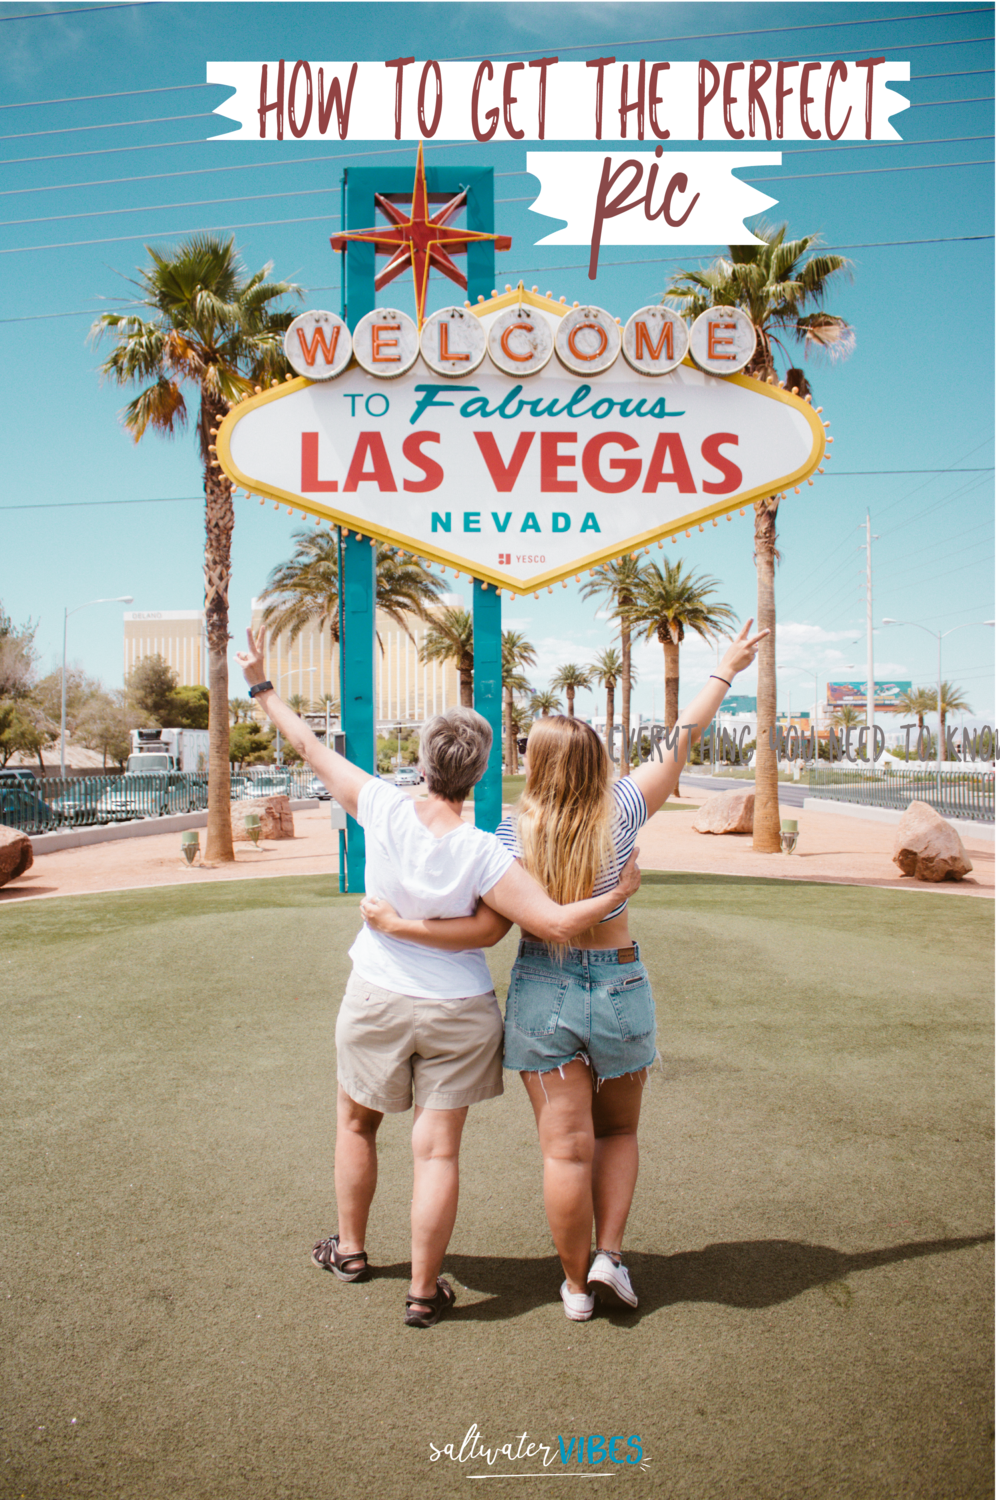 How To Get The Perfect Picture At The Las Vegas Sign | SaltWaterVibes